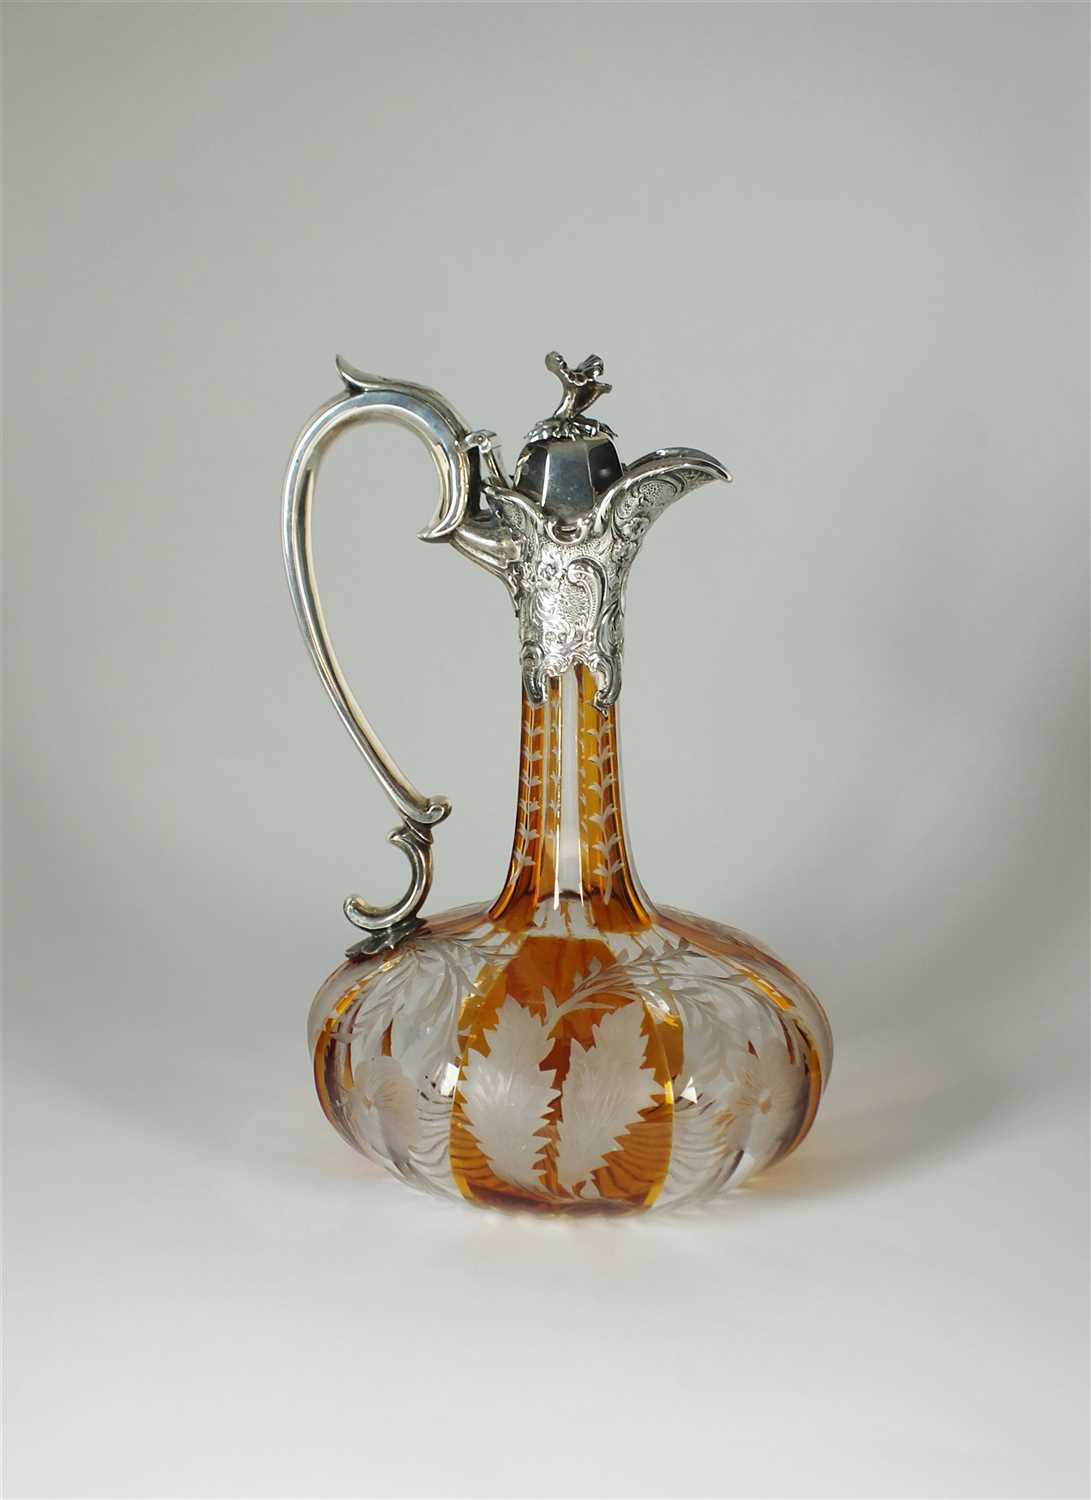 176 - An early Victorian silver mounted amber flashed glass claret jug